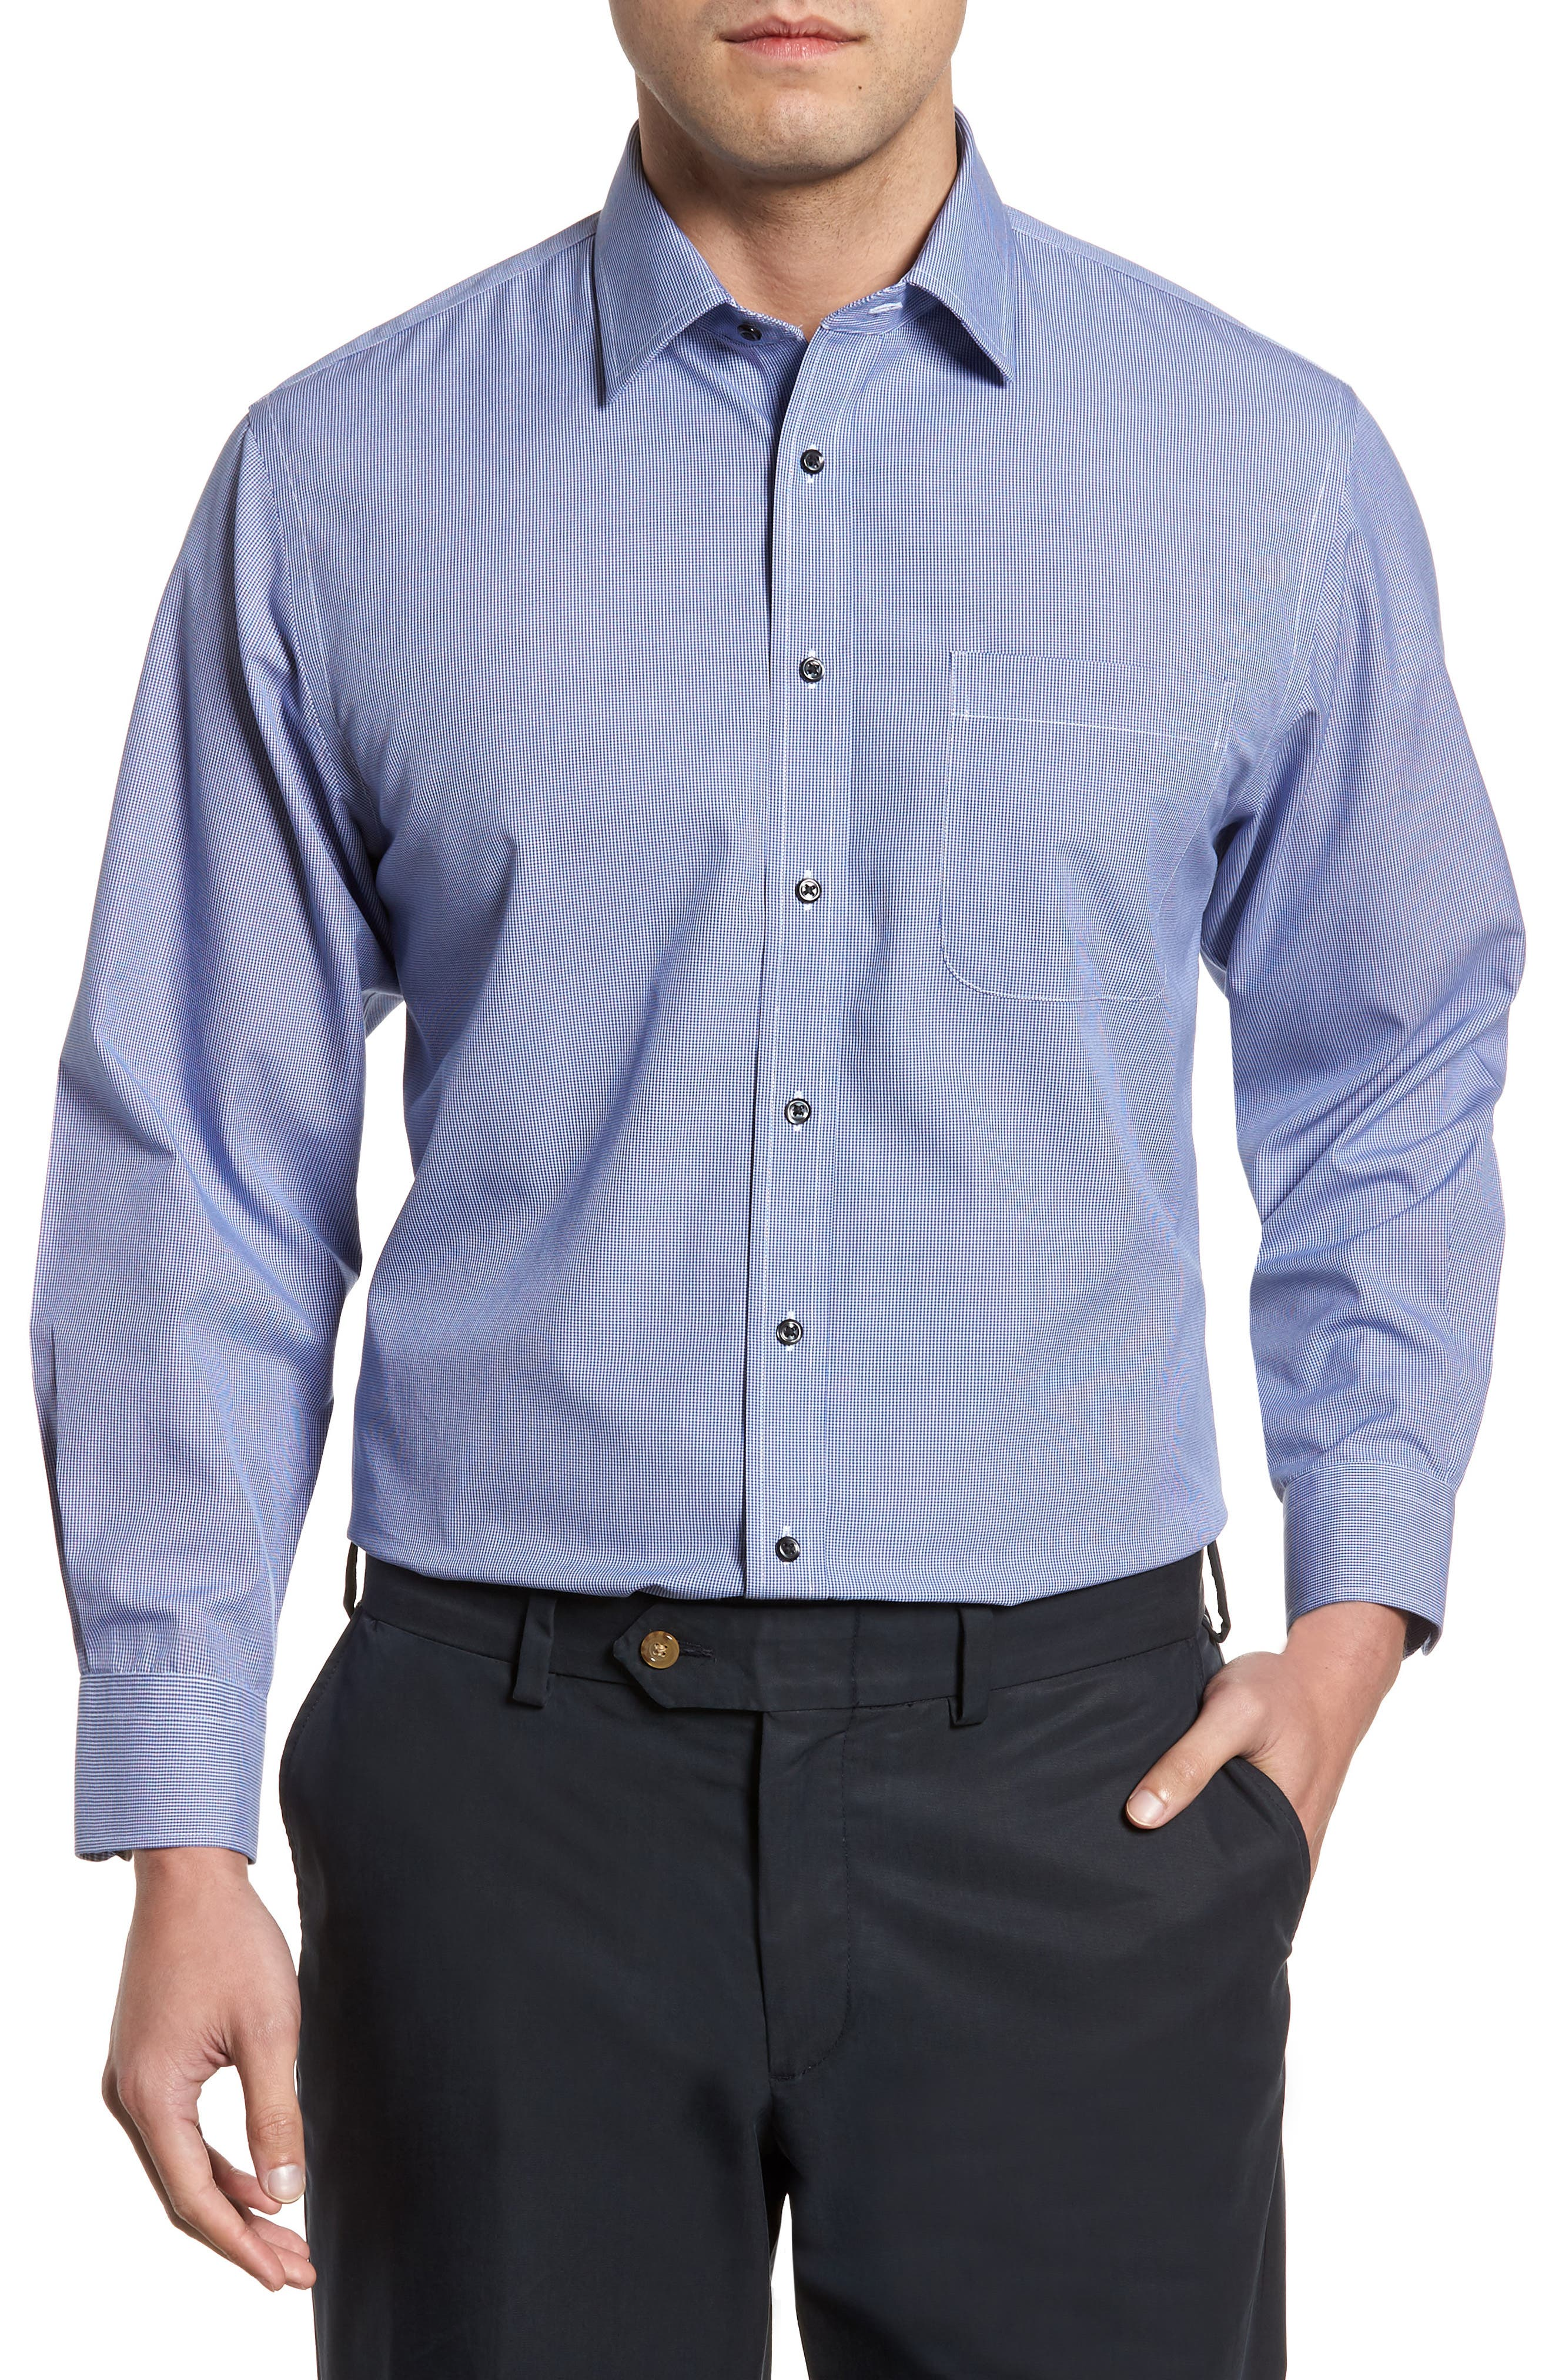 Smartcare<sup>™</sup> Traditional Fit Micro Check Dress Shirt,                         Main,                         color, 420